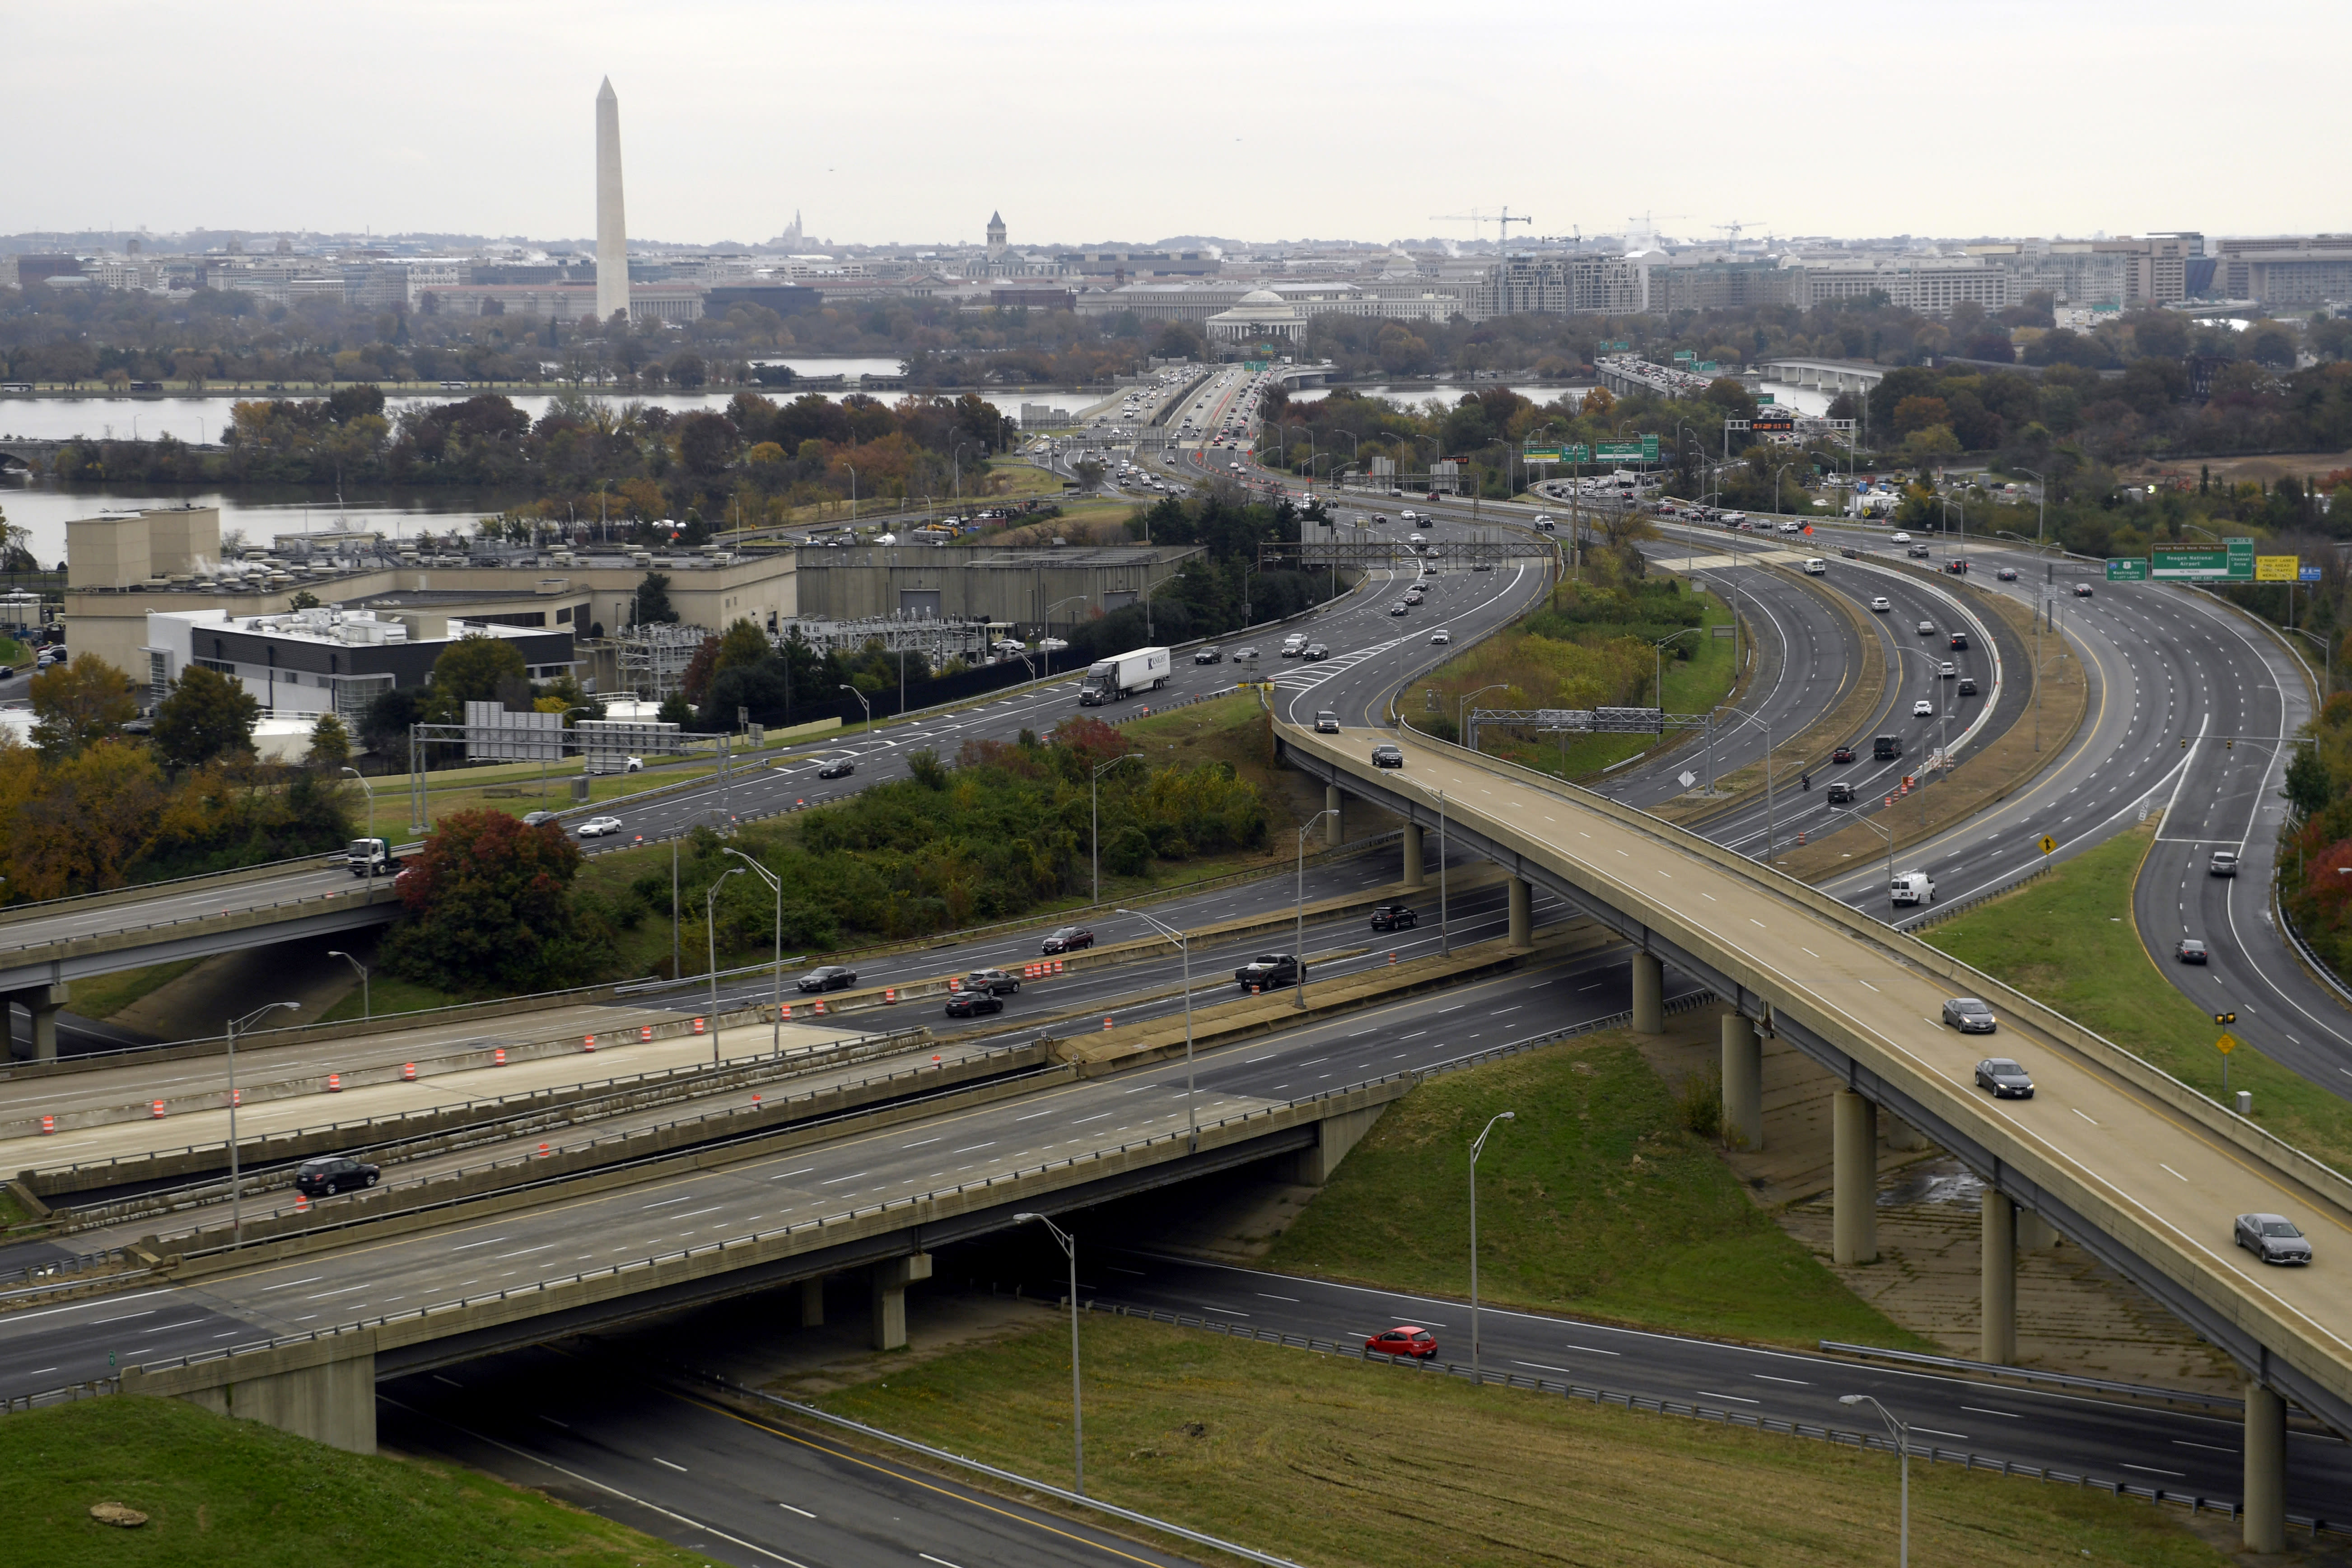 "FILE- This Friday, Nov. 9, 2018, file photo, shows a view of Washington from a revolving restaurant in Crystal City, Va. On Tuesday, Nov. 13, Amazon said it will split its second headquarters between Long Island City in New York and Crystal City. Development along major highways in Northern Virginia and Washington have led to ""unreasonable traffic delays on a daily basis"" in the past few years, with drive times that used to take 40 minutes ballooning to up to 90 minutes, said Thomas Cooke, professor of business law at Georgetown University's McDonough School of Business. (AP Photo/Susan Walsh, File)"